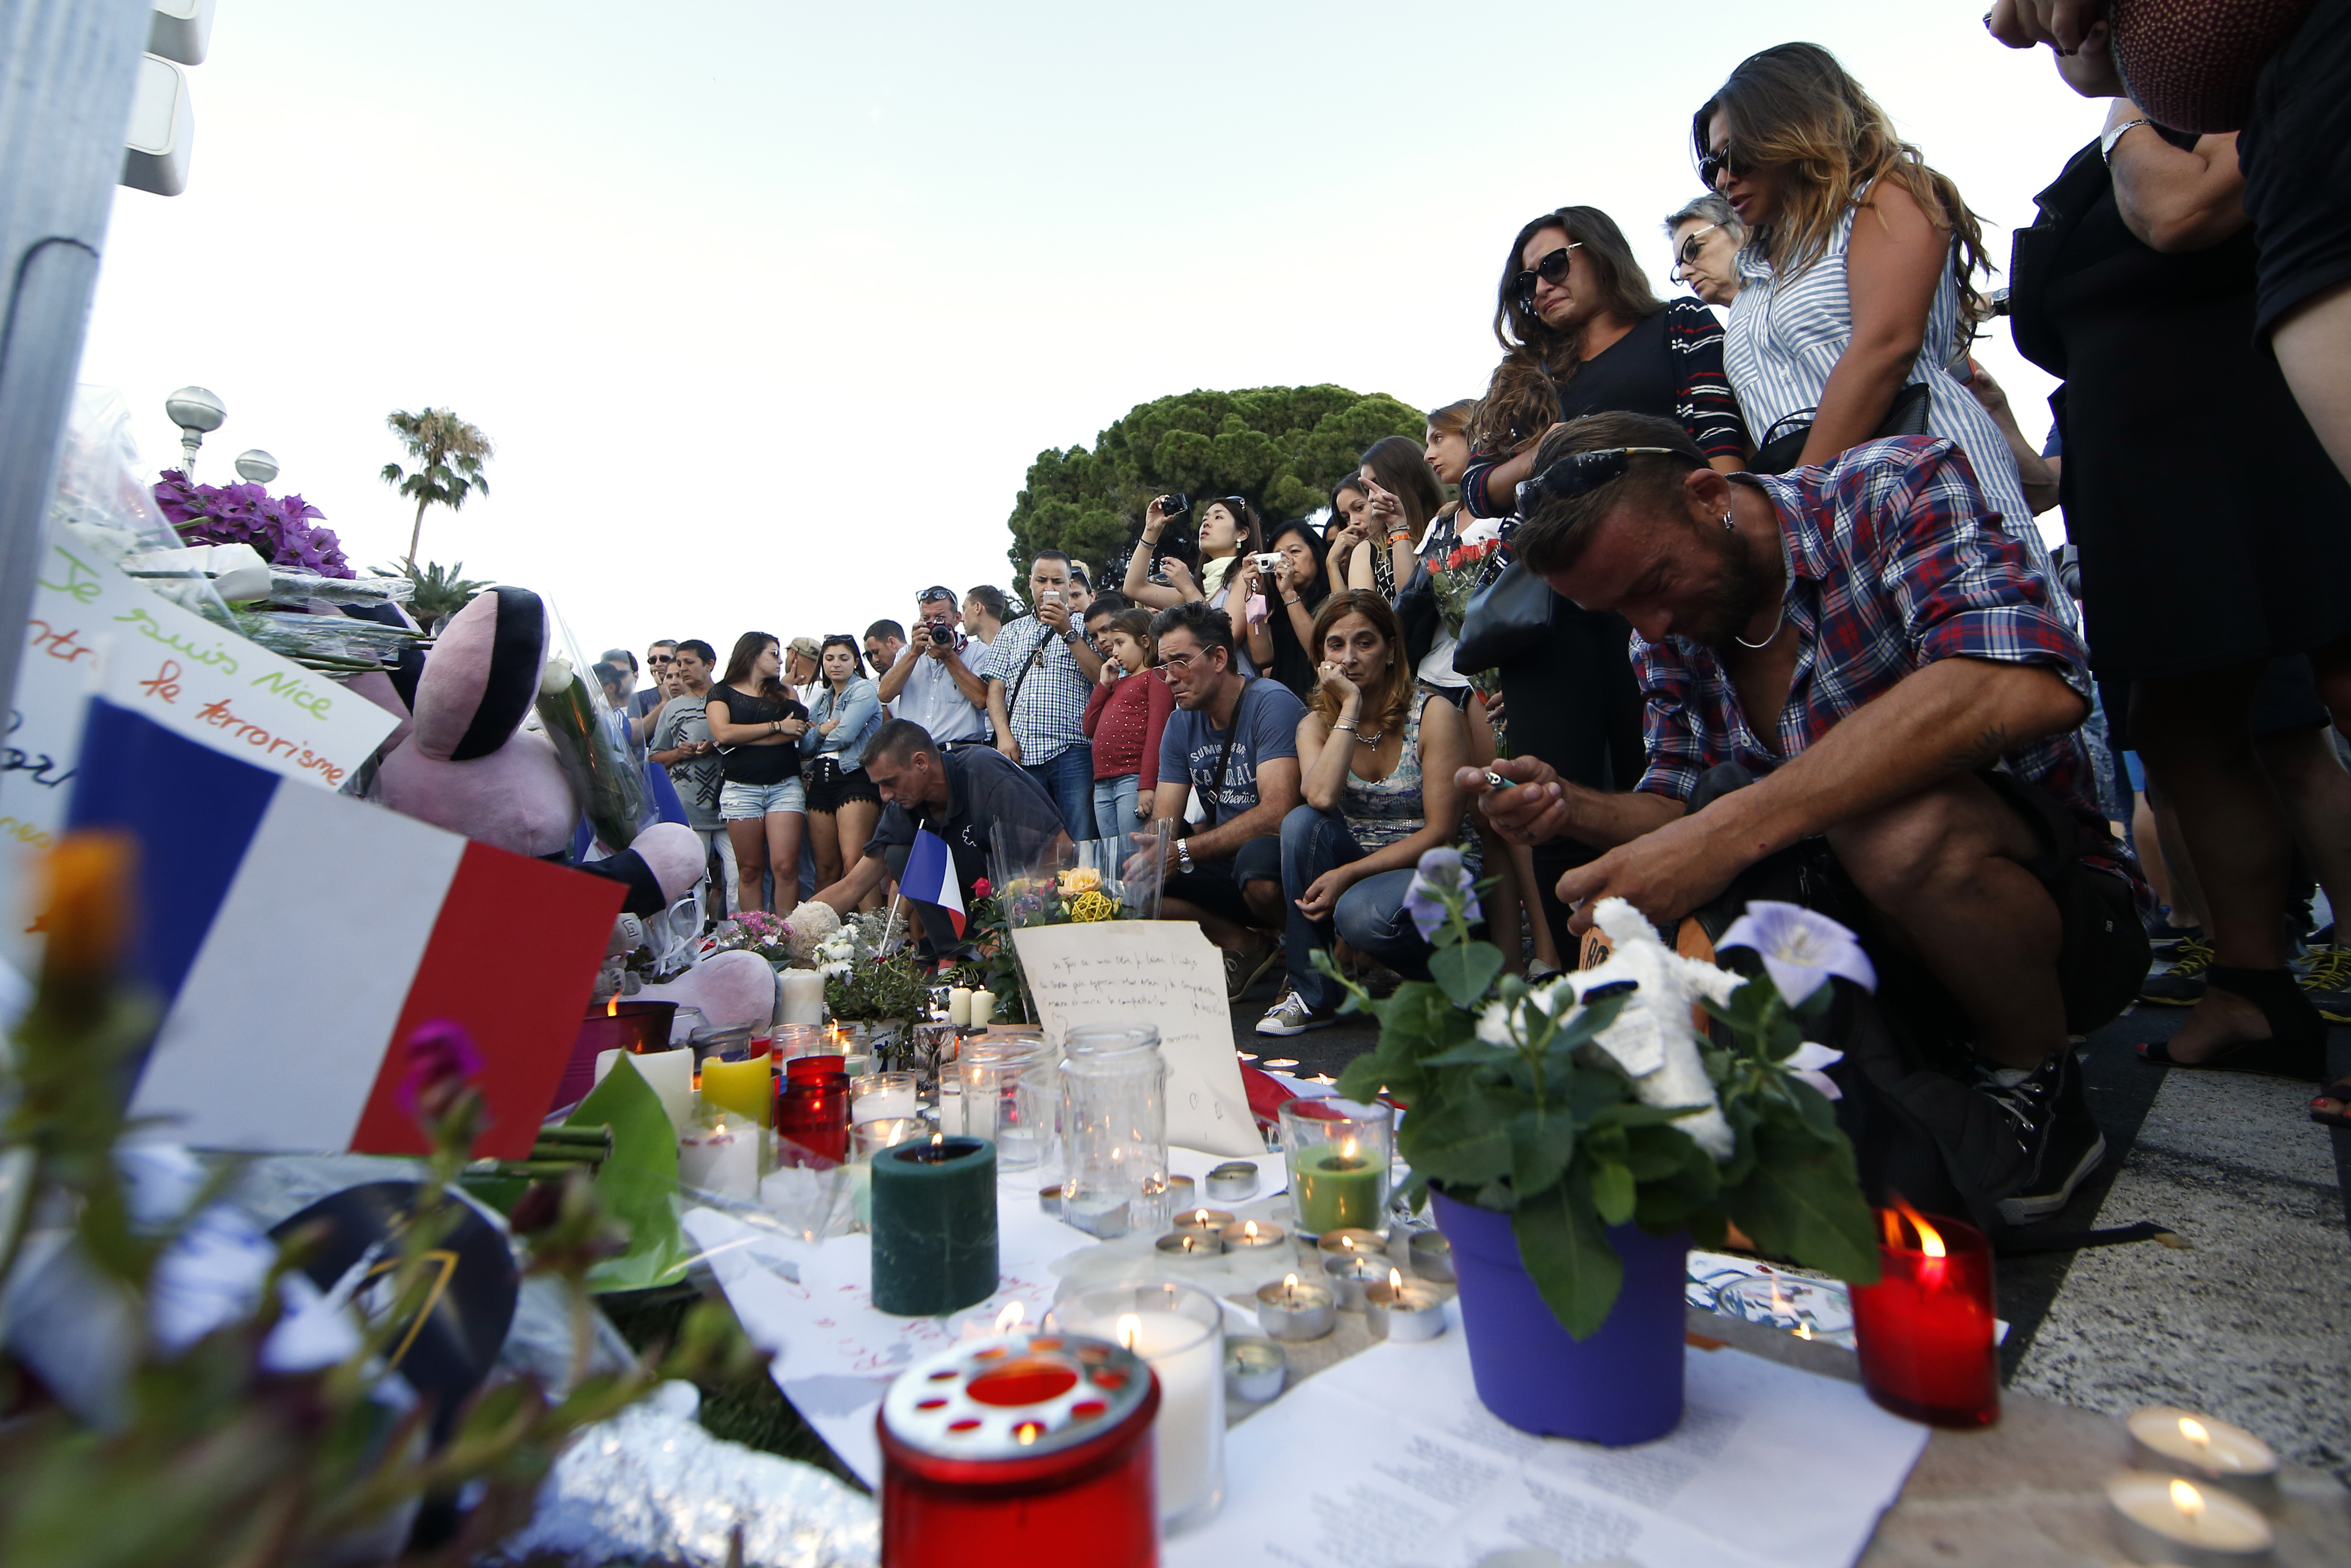 People gather near flowers and candles left in tribute to victims the day after a truck ran into a crowd at high speed killing scores and injuring more who were celebrating the Bastille Day national holiday